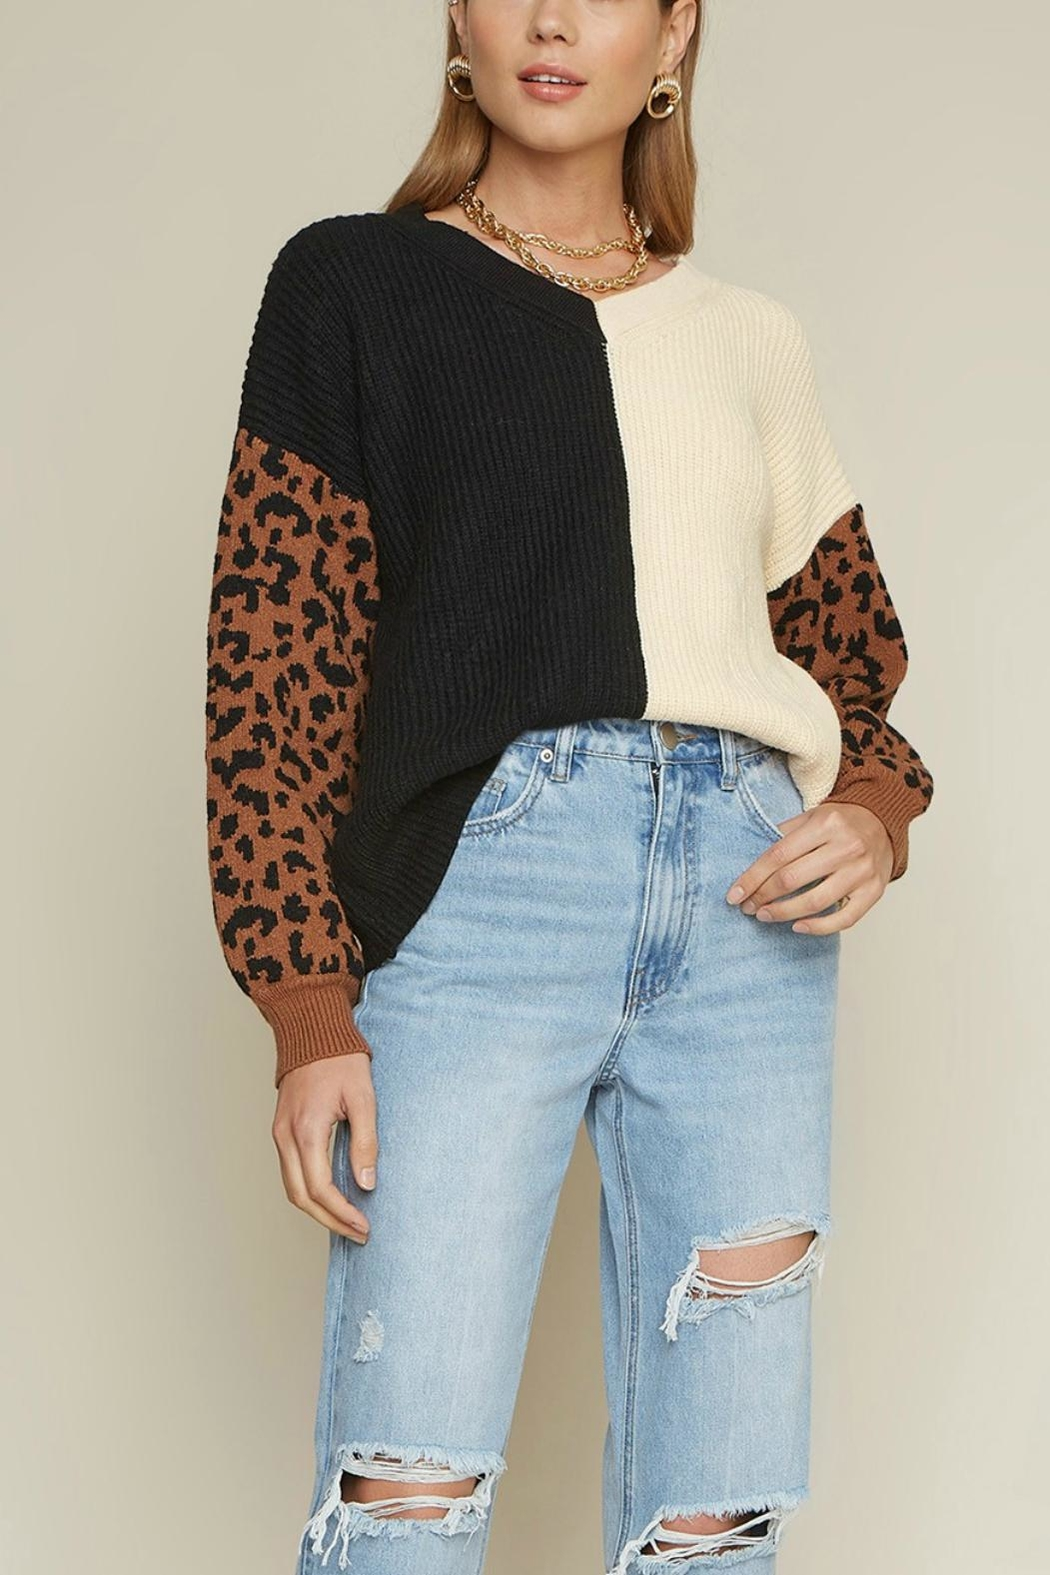 Pretty Little Things Colorblock Leopard Sweater - Main Image